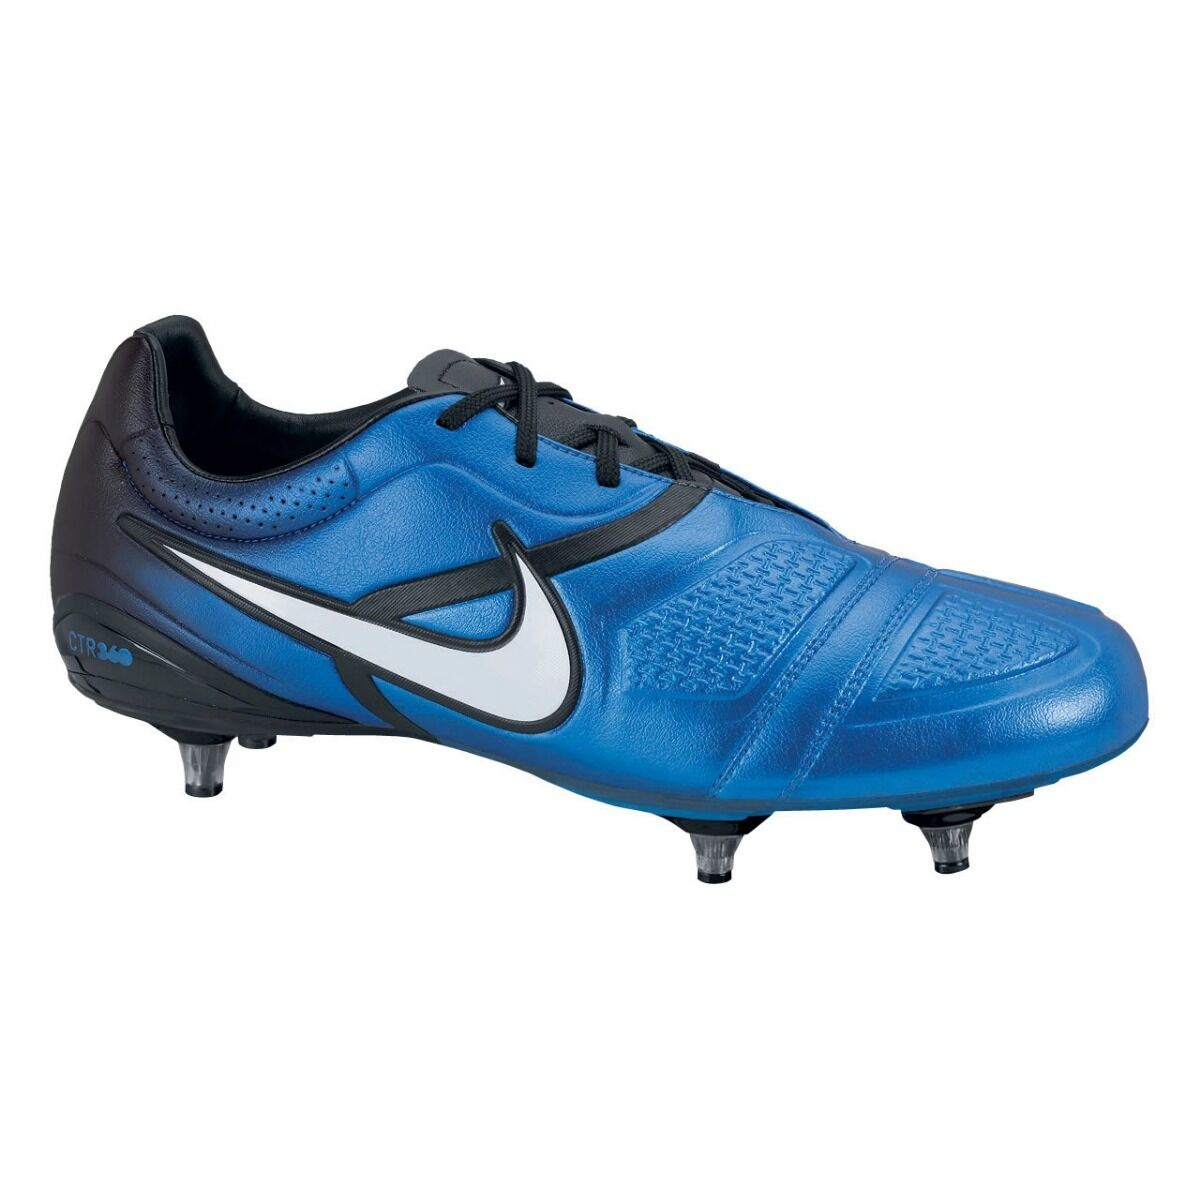 NIKE homme Taille MAESTRI 6  CTR 360 MAESTRI Taille SG FOOTBALL Bottes chaussures SOFT GROUND Bleu f0e2df